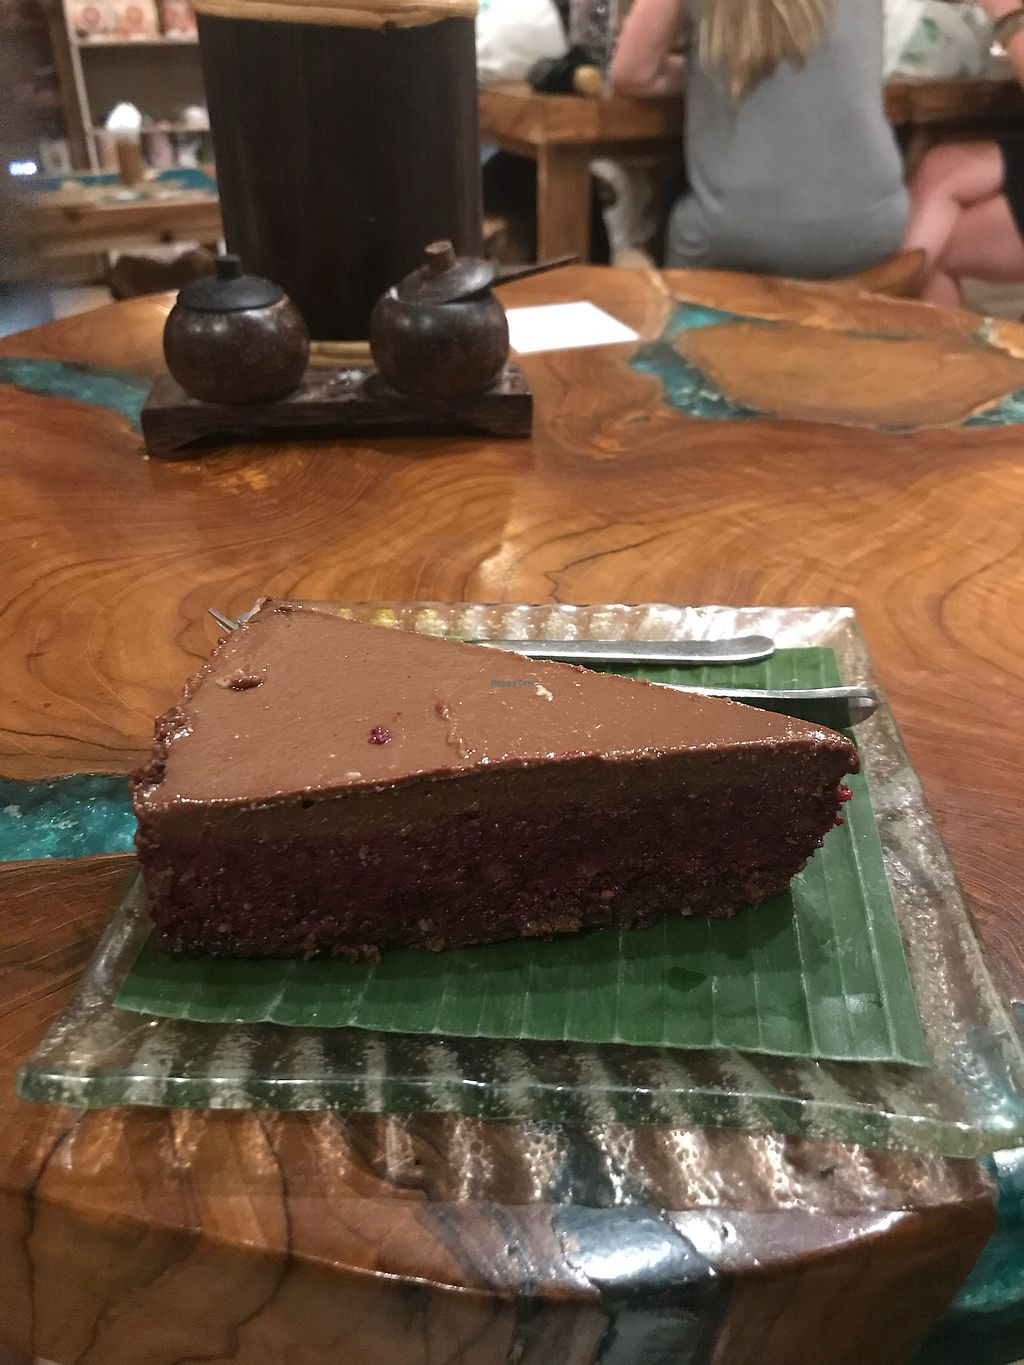 """Photo of Atman Kafe  by <a href=""""/members/profile/LolaNachtigall"""">LolaNachtigall</a> <br/>Beetroot, Coconut, Cacao Cake <br/> March 16, 2018  - <a href='/contact/abuse/image/62560/371381'>Report</a>"""